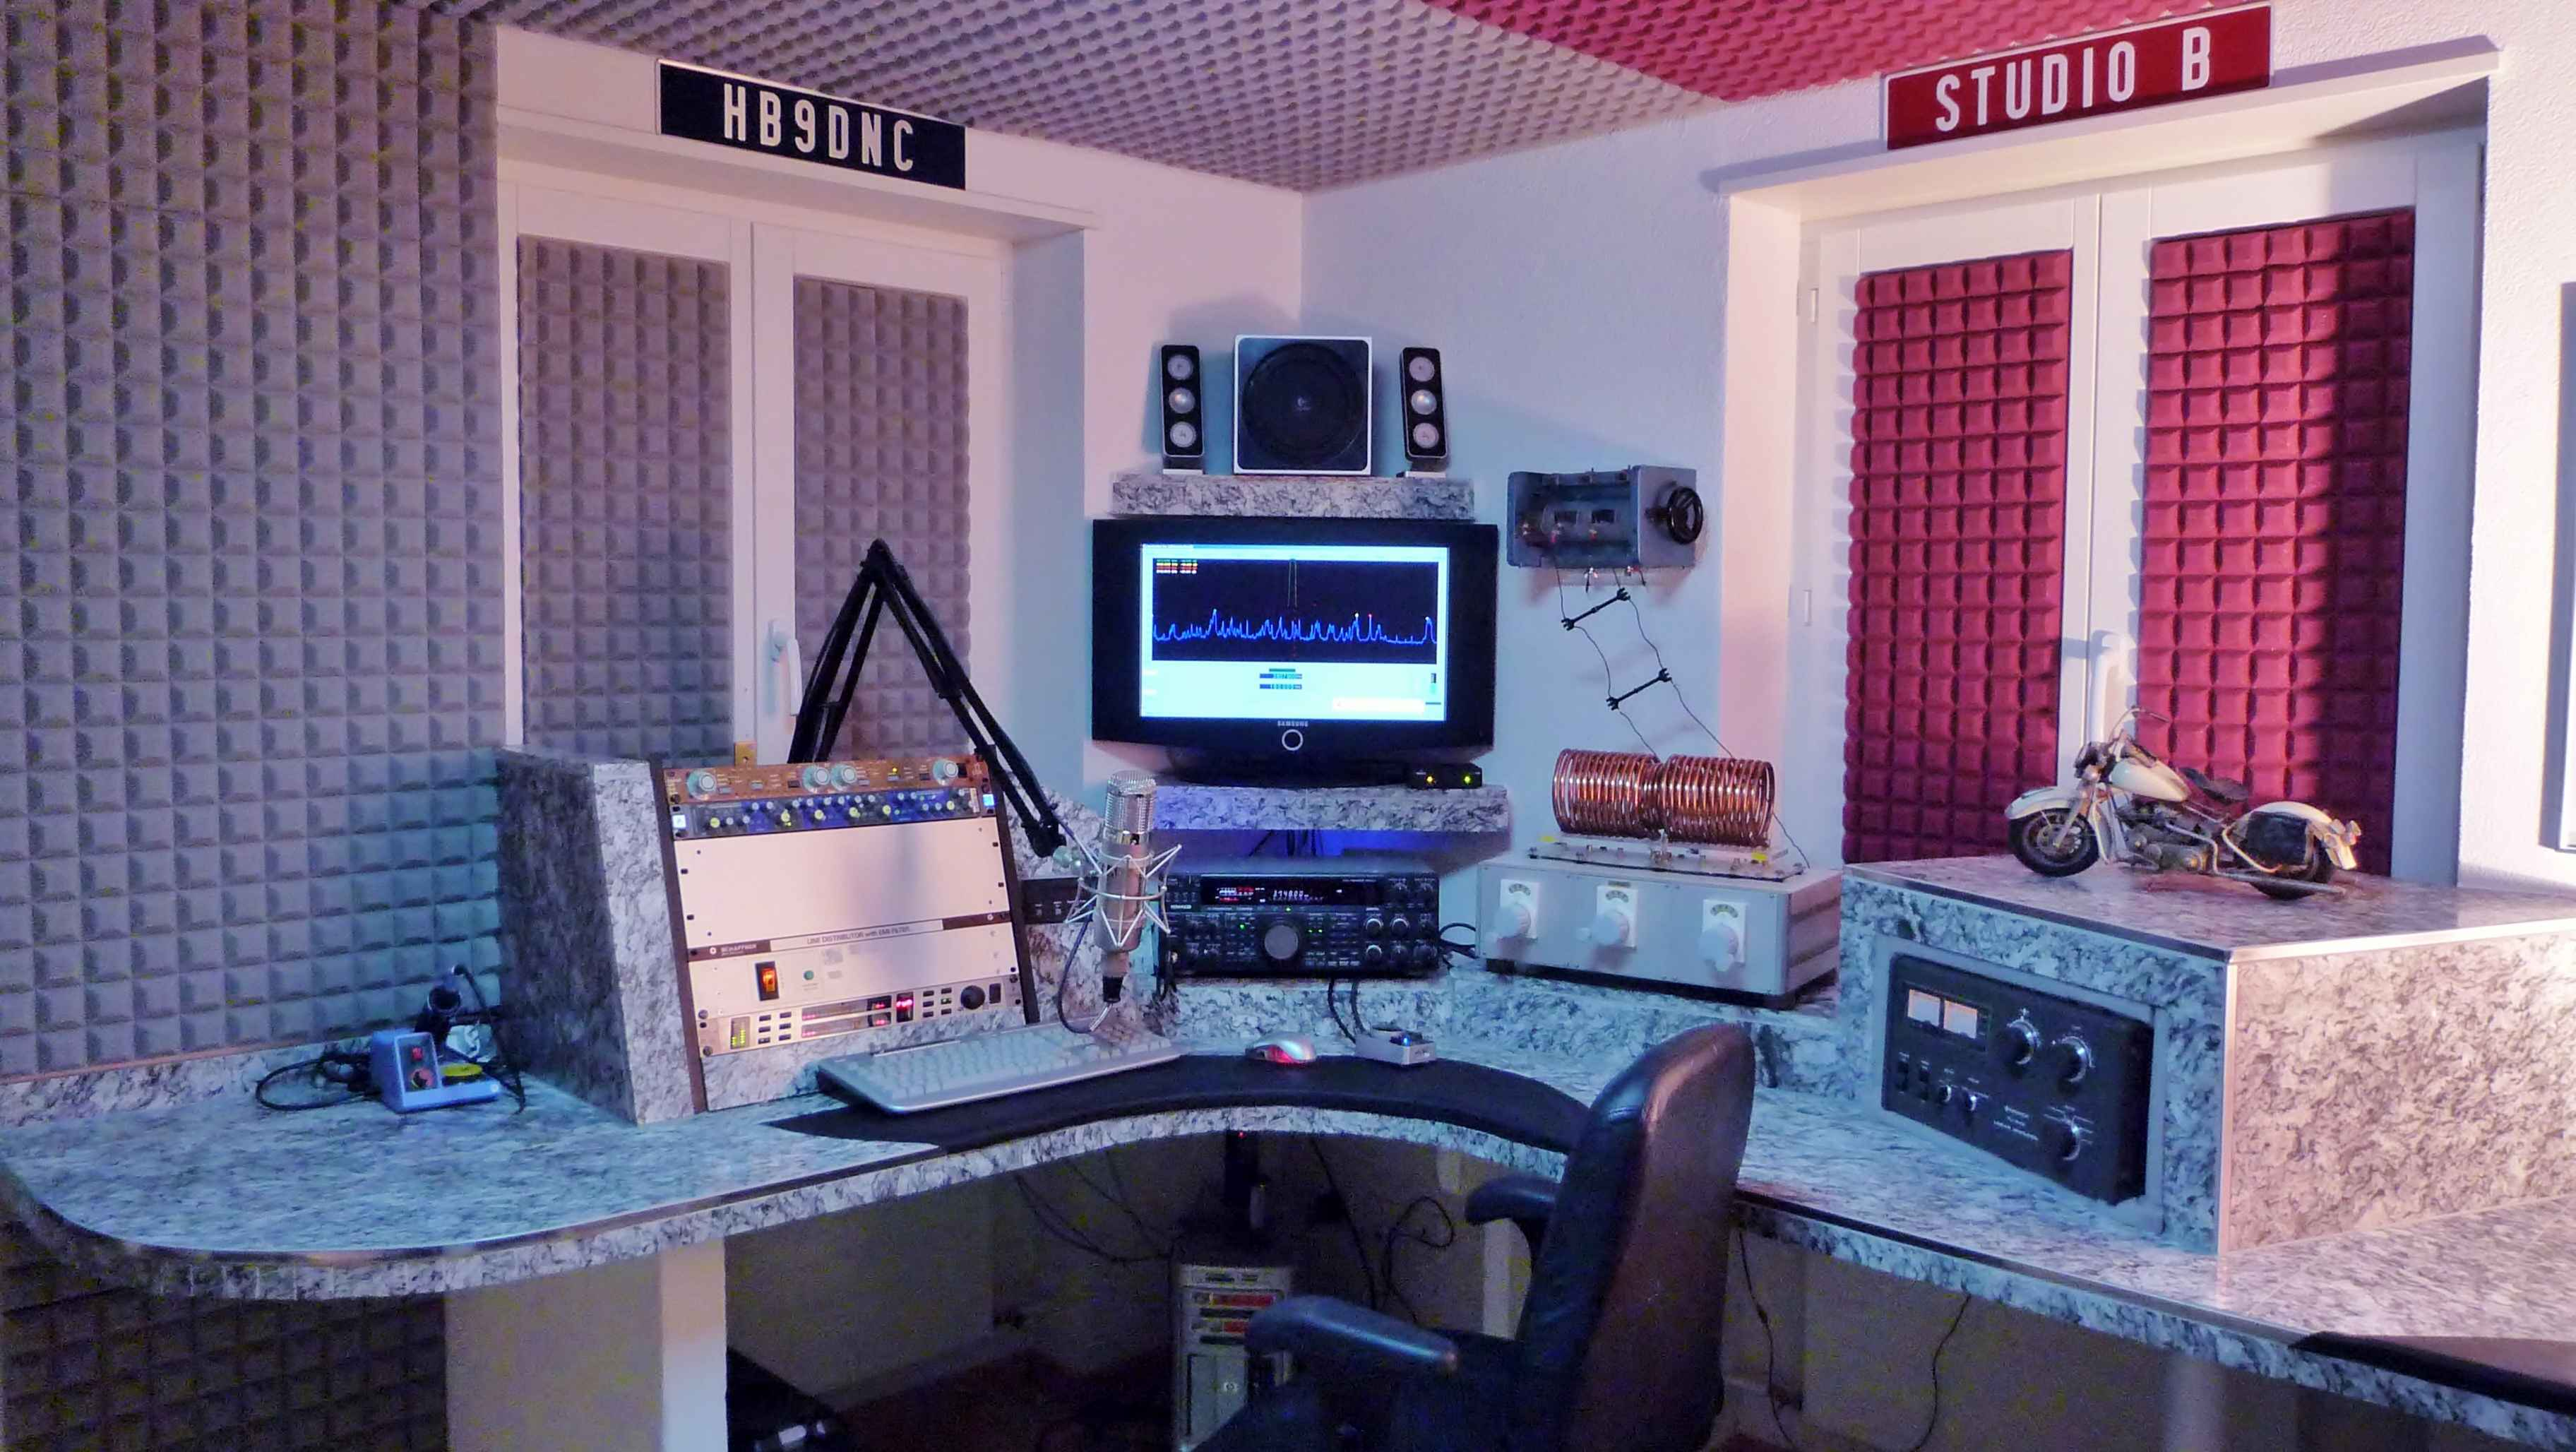 Here is the eSSB Voodoo Studio of HB9DNC!